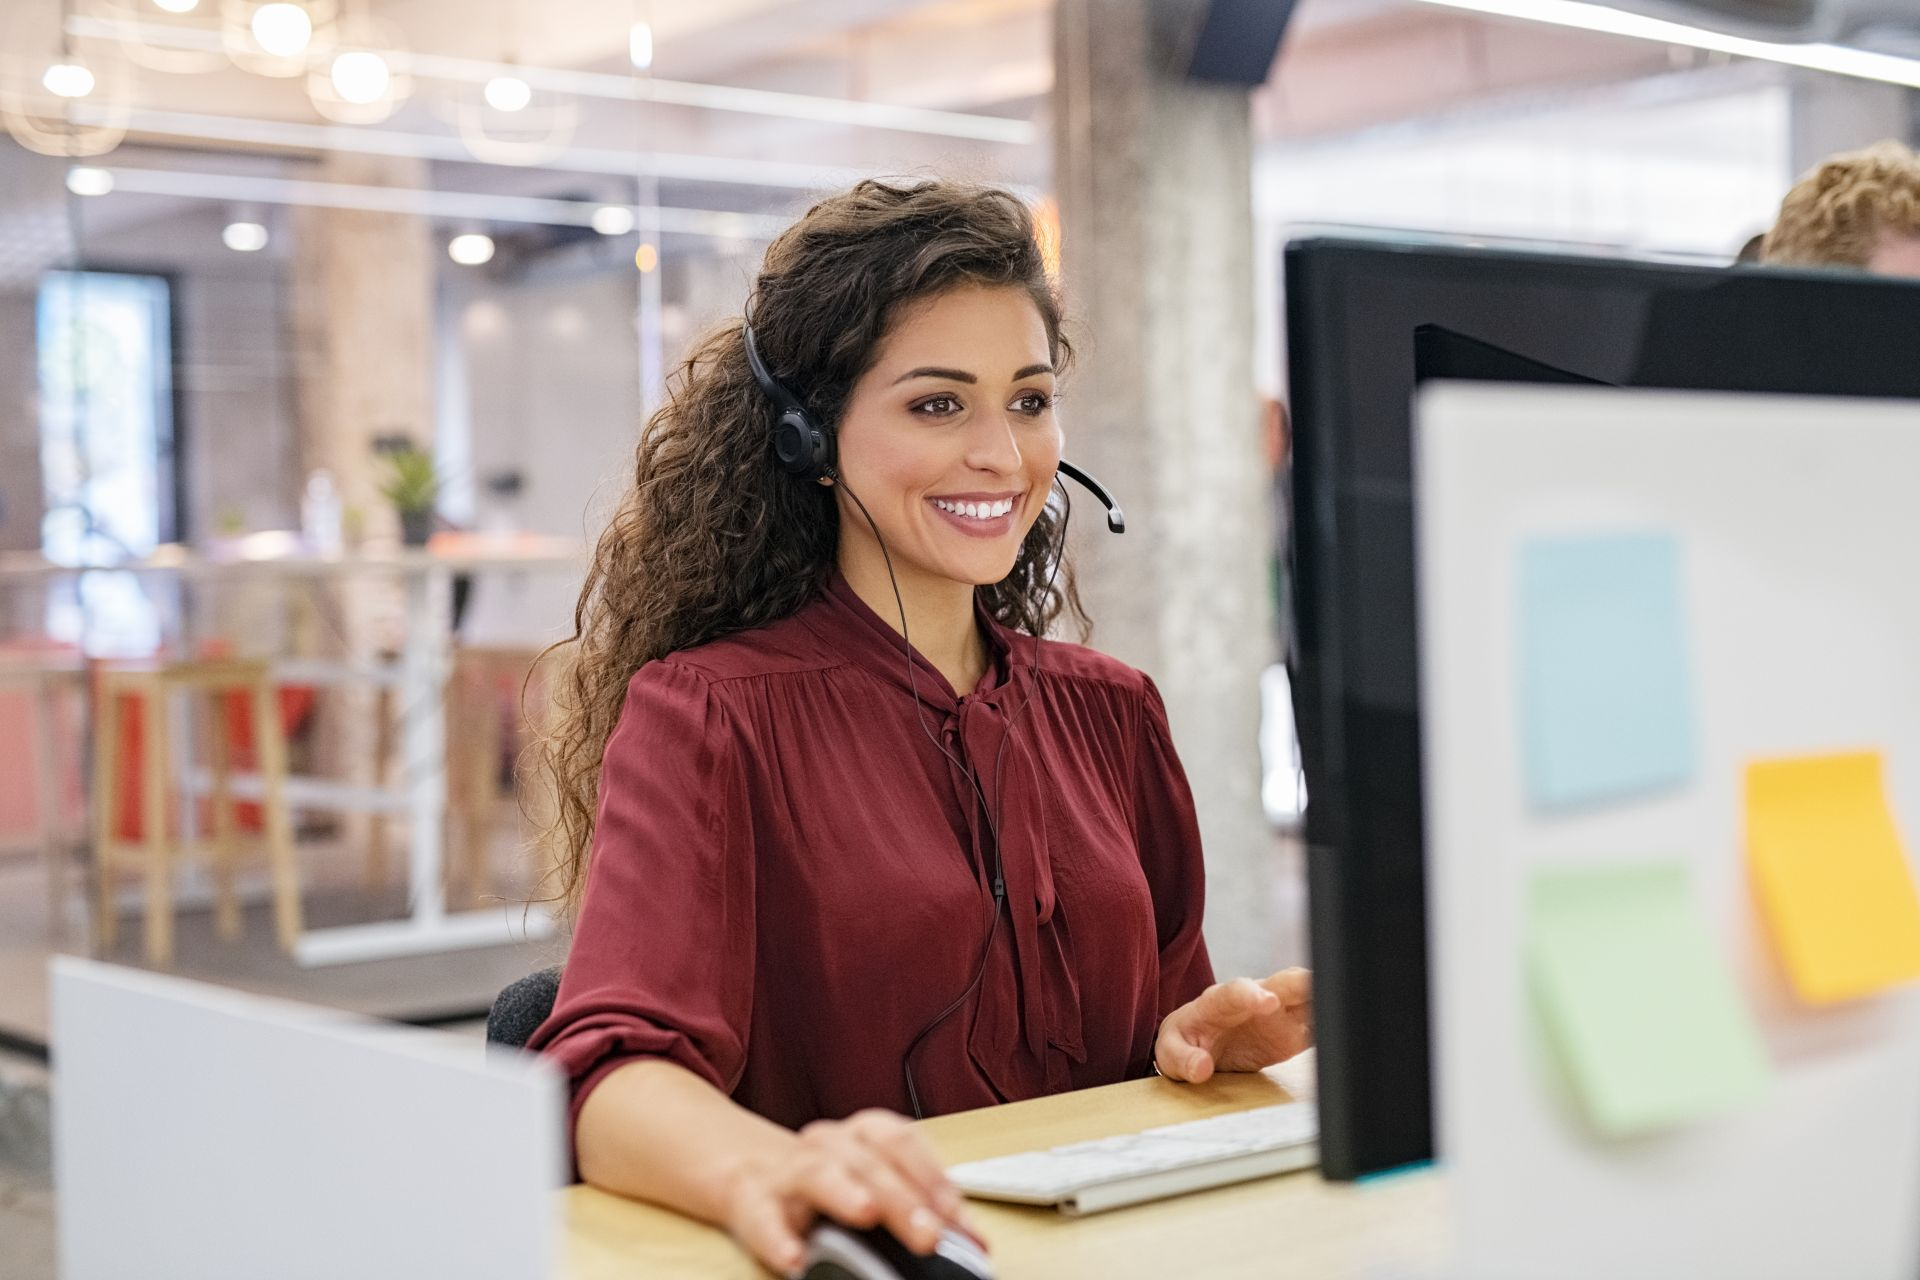 https://www.electranorte.es/area-clientes/resources/happy-smiling-woman-working-in-call-center-wzecz2u.jpg